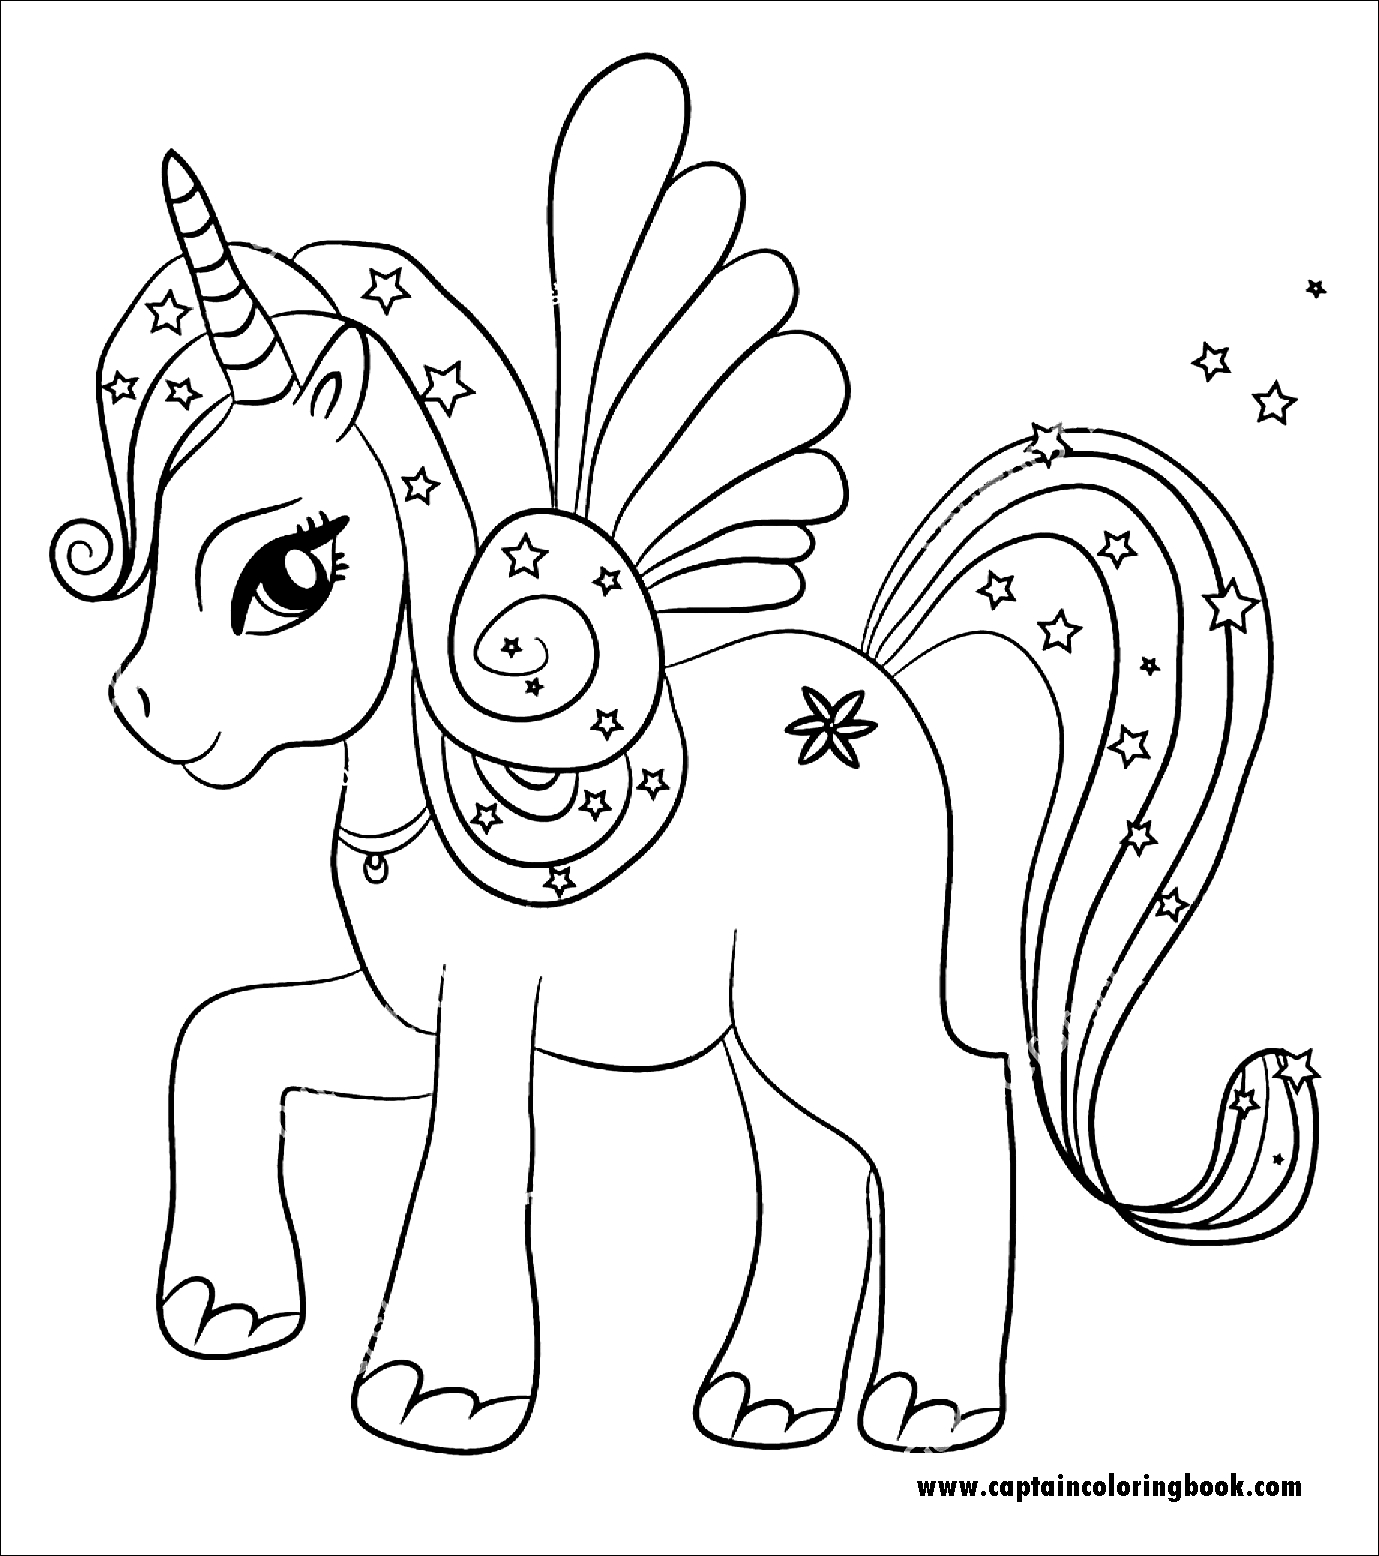 adorable unicorn mermaid coloring pages 11 free printable mermaid coloring pages no prep pages coloring unicorn adorable mermaid